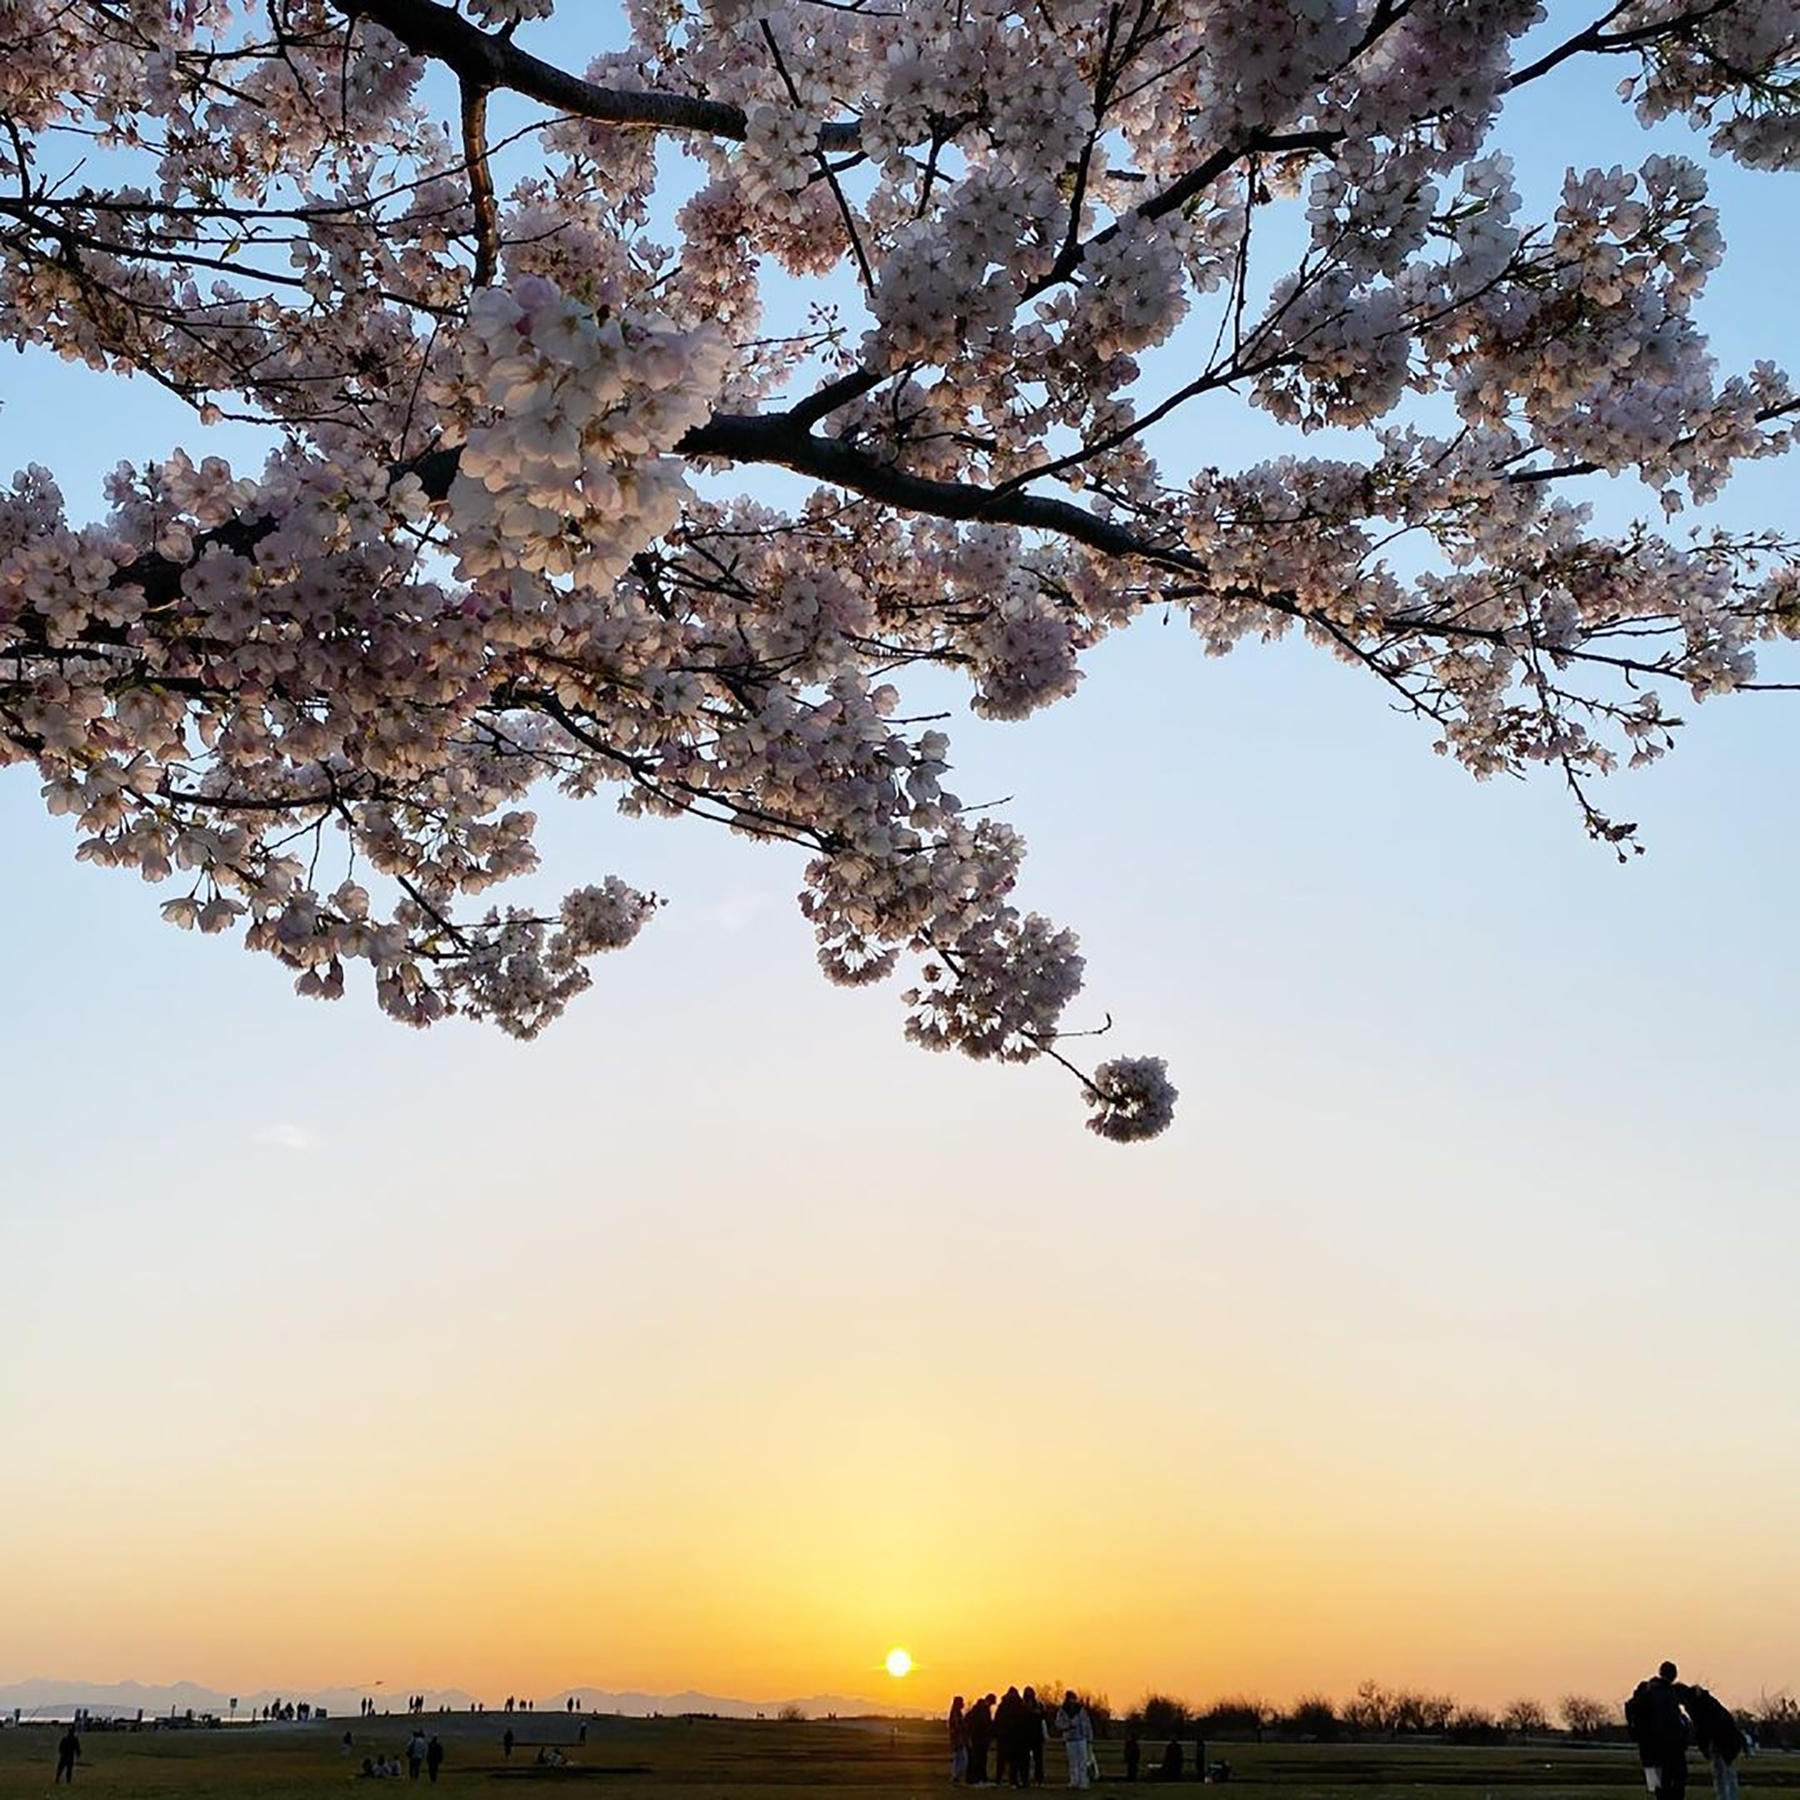 A photo of cherry blossoms set against a backdrop of a dusky, blue-yellow sunset.